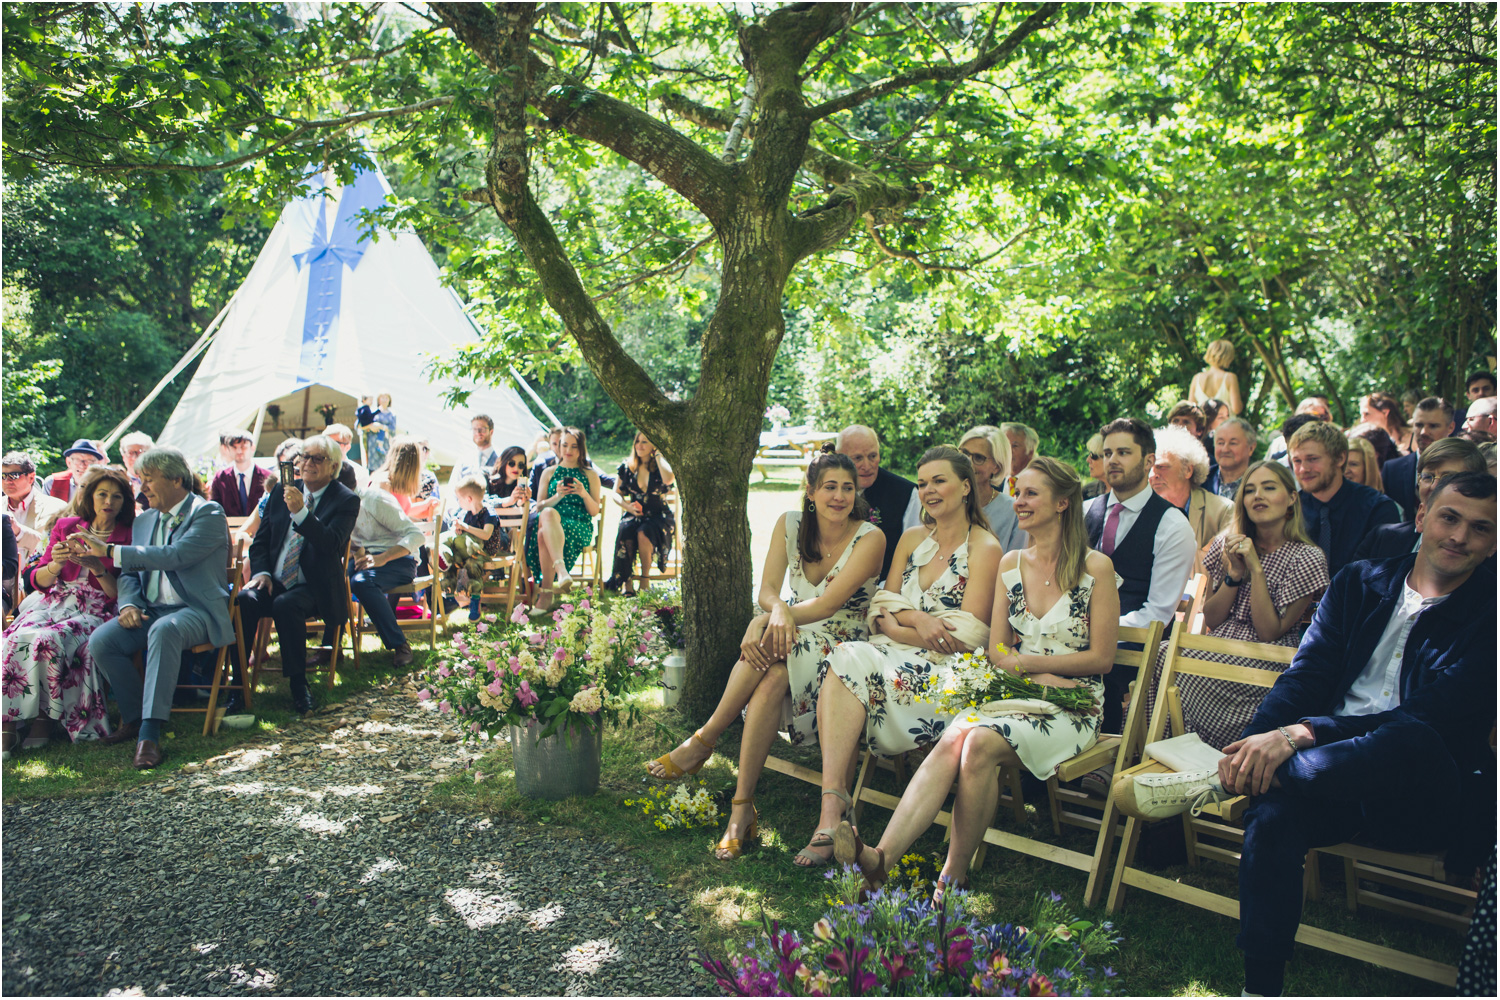 5 Wedding guests seated outside with event tipi in background